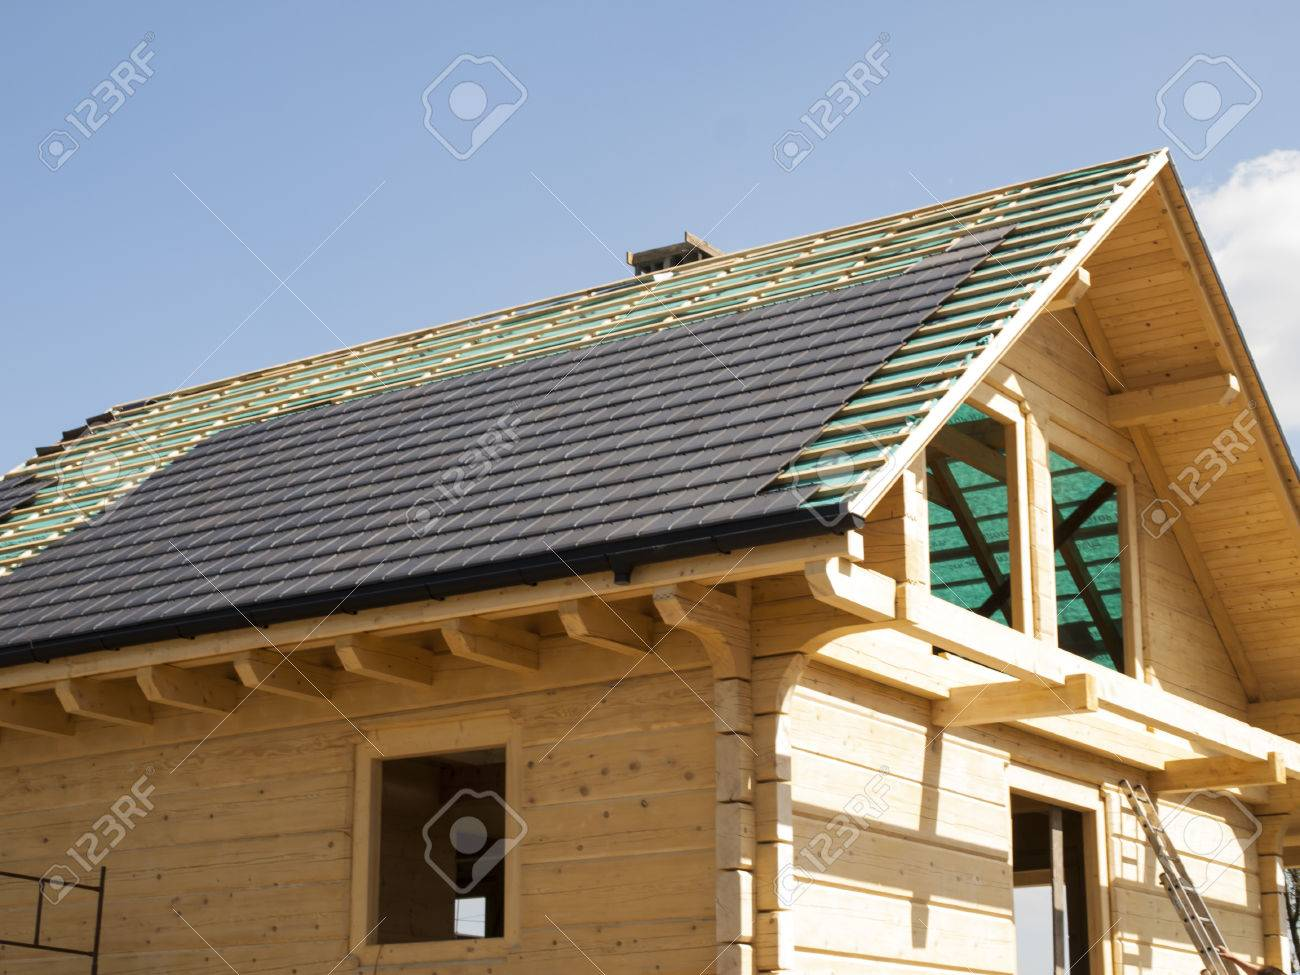 Performance Of Ceramic Tiled Roof For A Wooden House Stock Photo ...